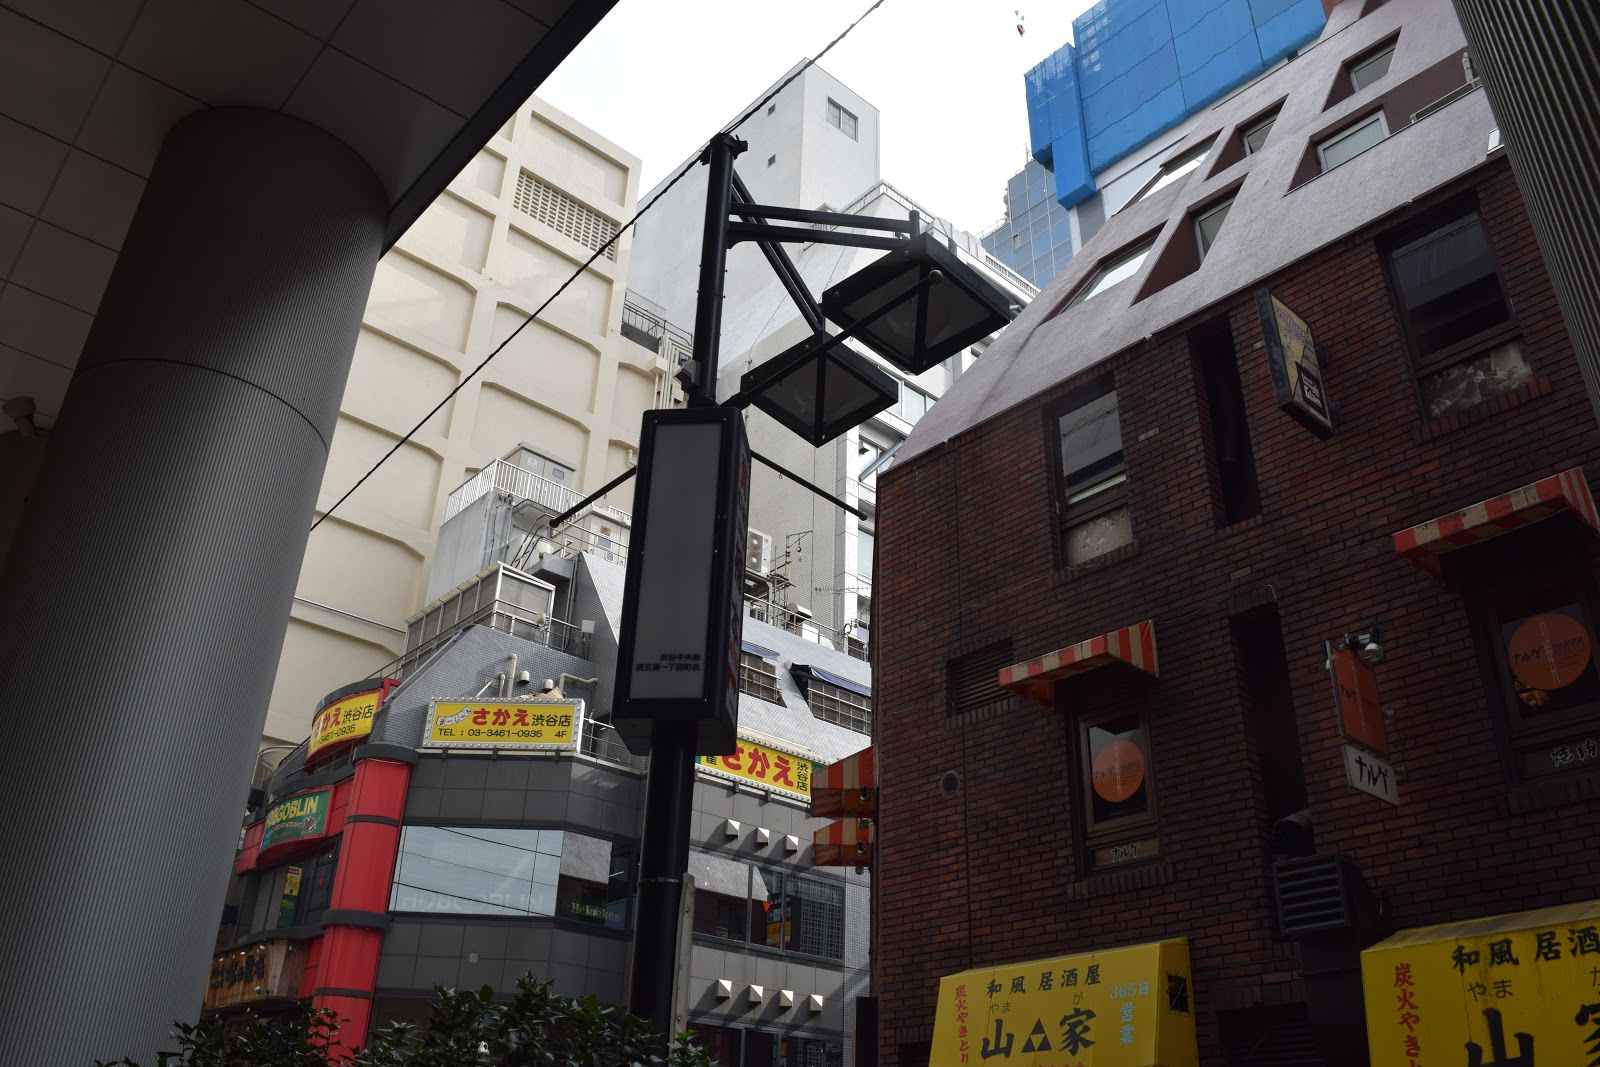 buildings in Shibuya